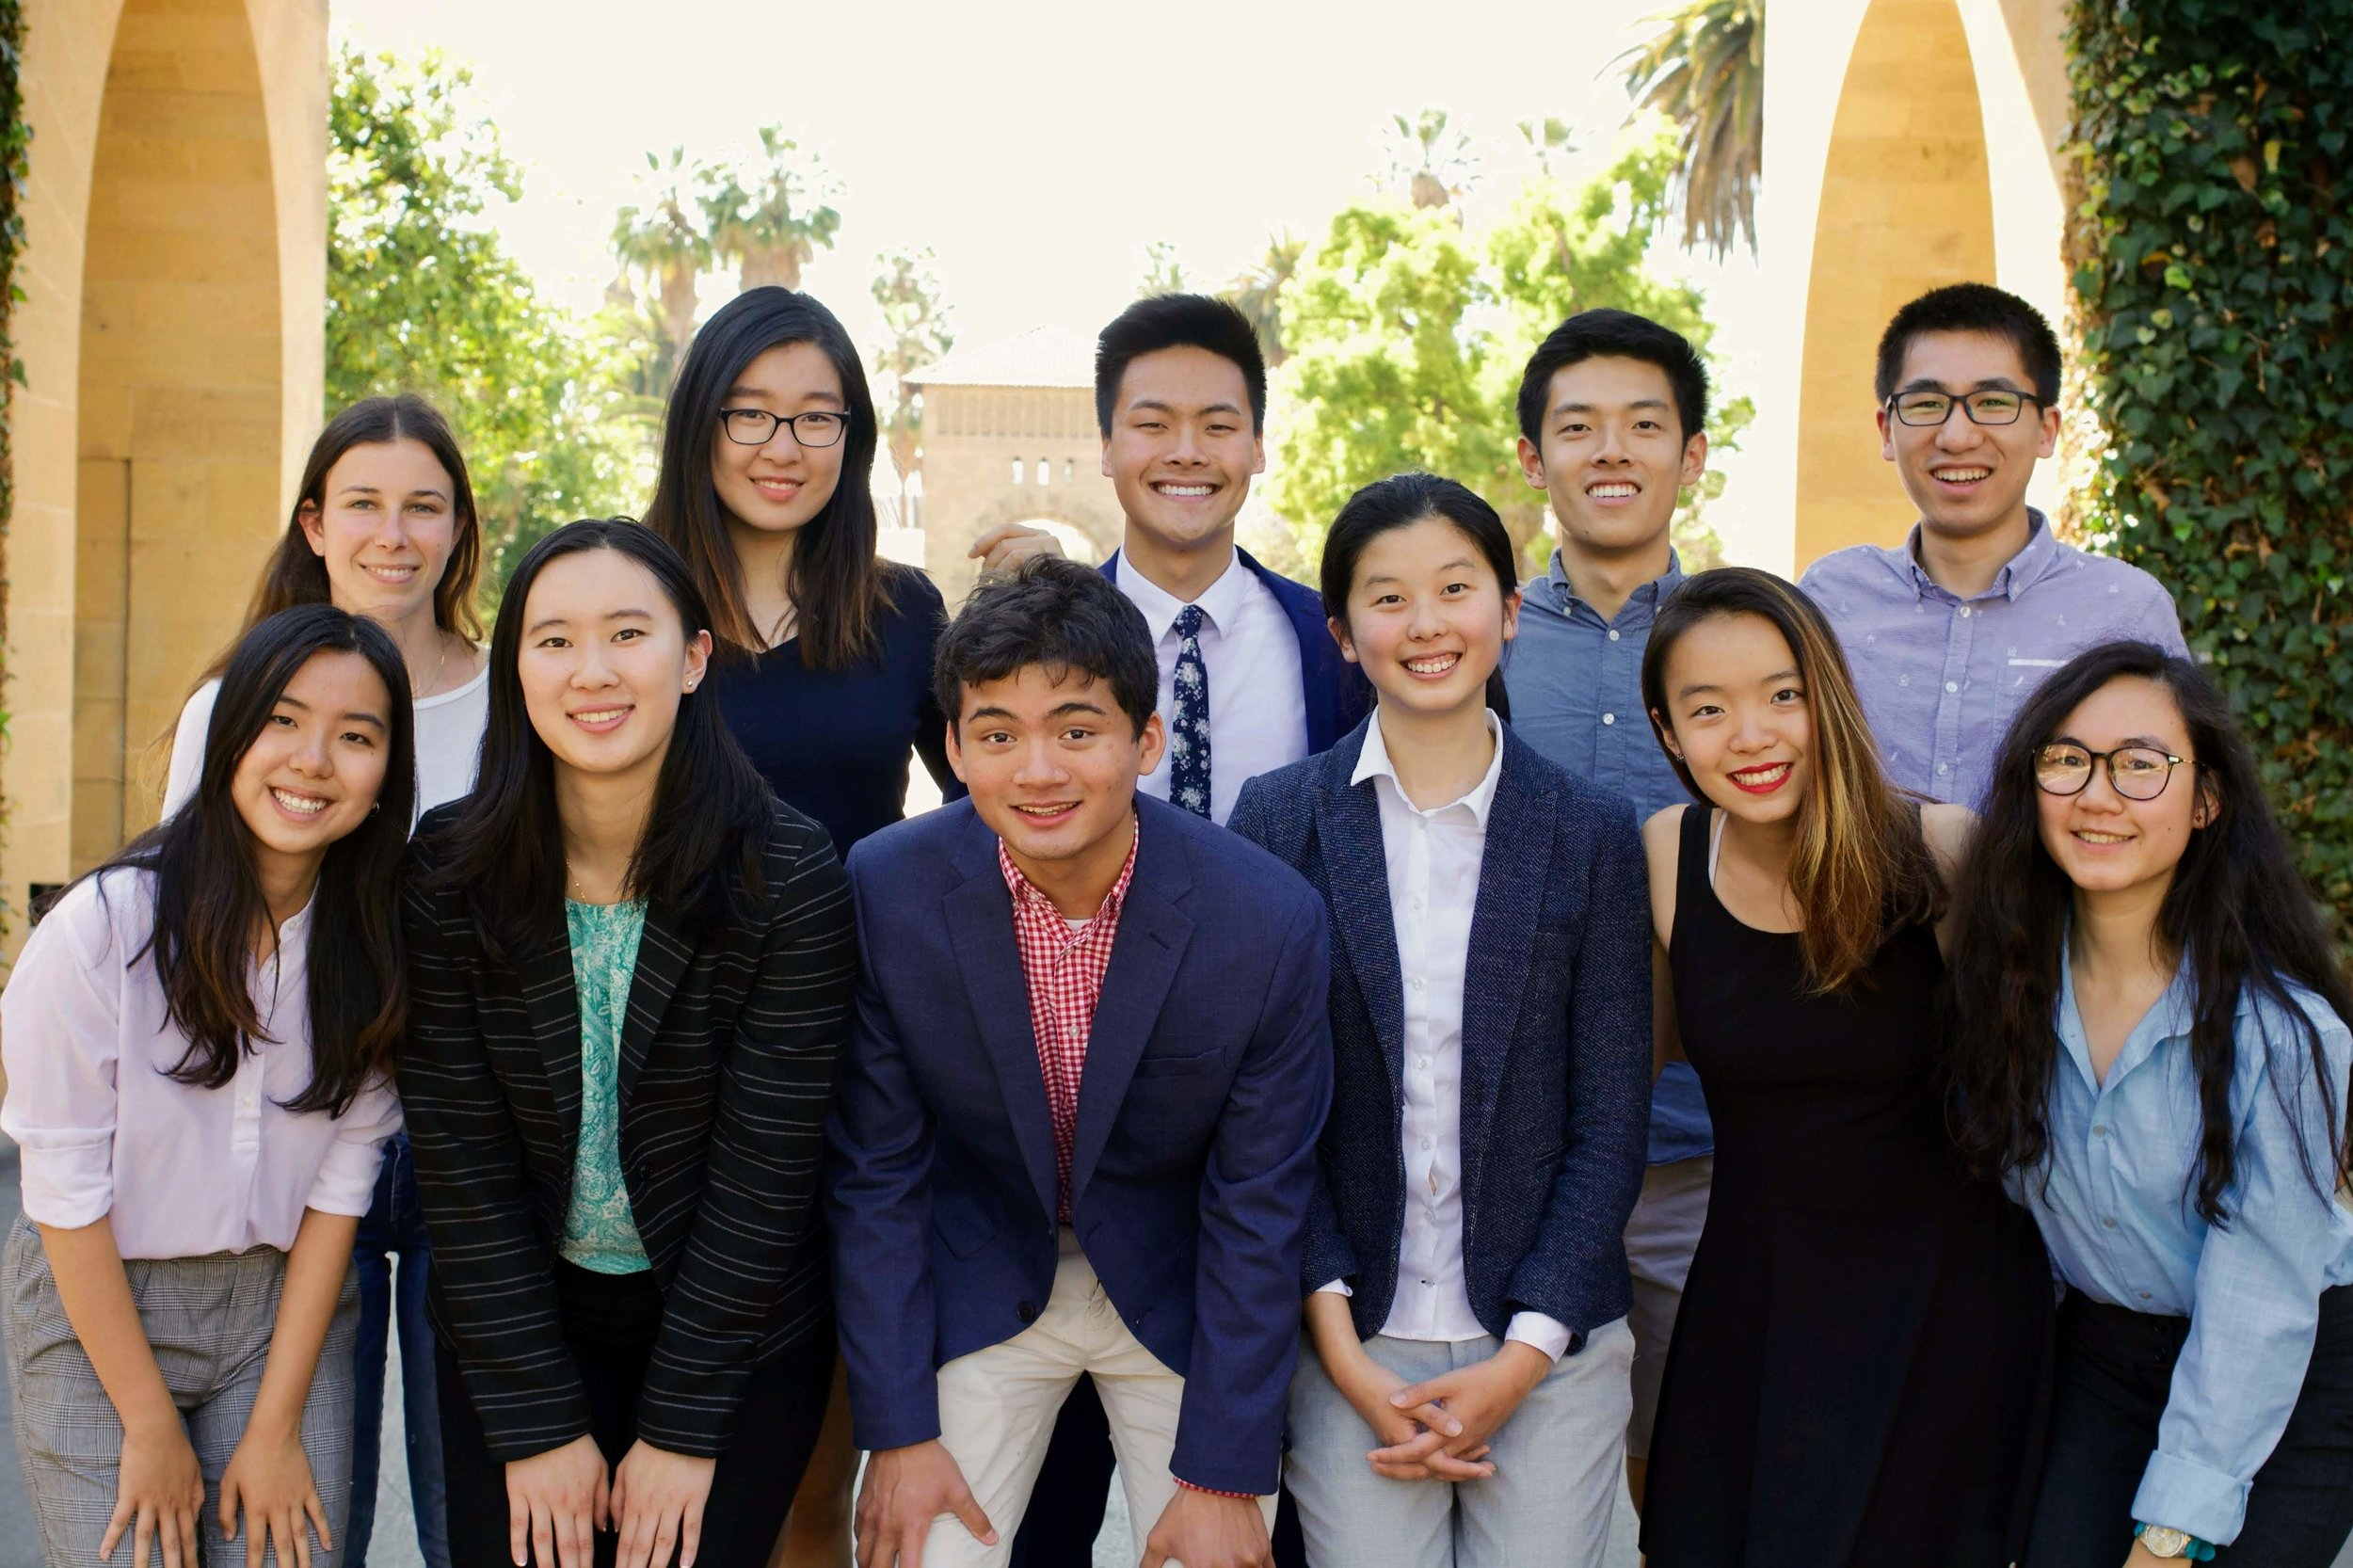 The 2018-19 Stanford FACES Executive Team poses for a collegial photo on Stanford's historic main quad. Pictured from left to right, front row: Zhenqi Hu (Vice President, On-Campus Programming), Caroline Zhang (Vice President, Alumni Relations), Nikhil Shankar (Co-President), Celia Xinuo Chen (Co-President), Victoria Yaqing Yang (Executive Member), Cathy Dao (Vice President, Budget). Back row: Cami Katz (Vice President, Telesummit), Lilian Kong (Outgoing Co-President), Troy Shen (Executive Member), Zecheng Wang (Vice President, Chapter Relations), Yulou Zhou (Executive Member). Not pictured: Andrew Tang (Executive Member), Francesca Lupia (Outgoing Co-President and Executive Member).